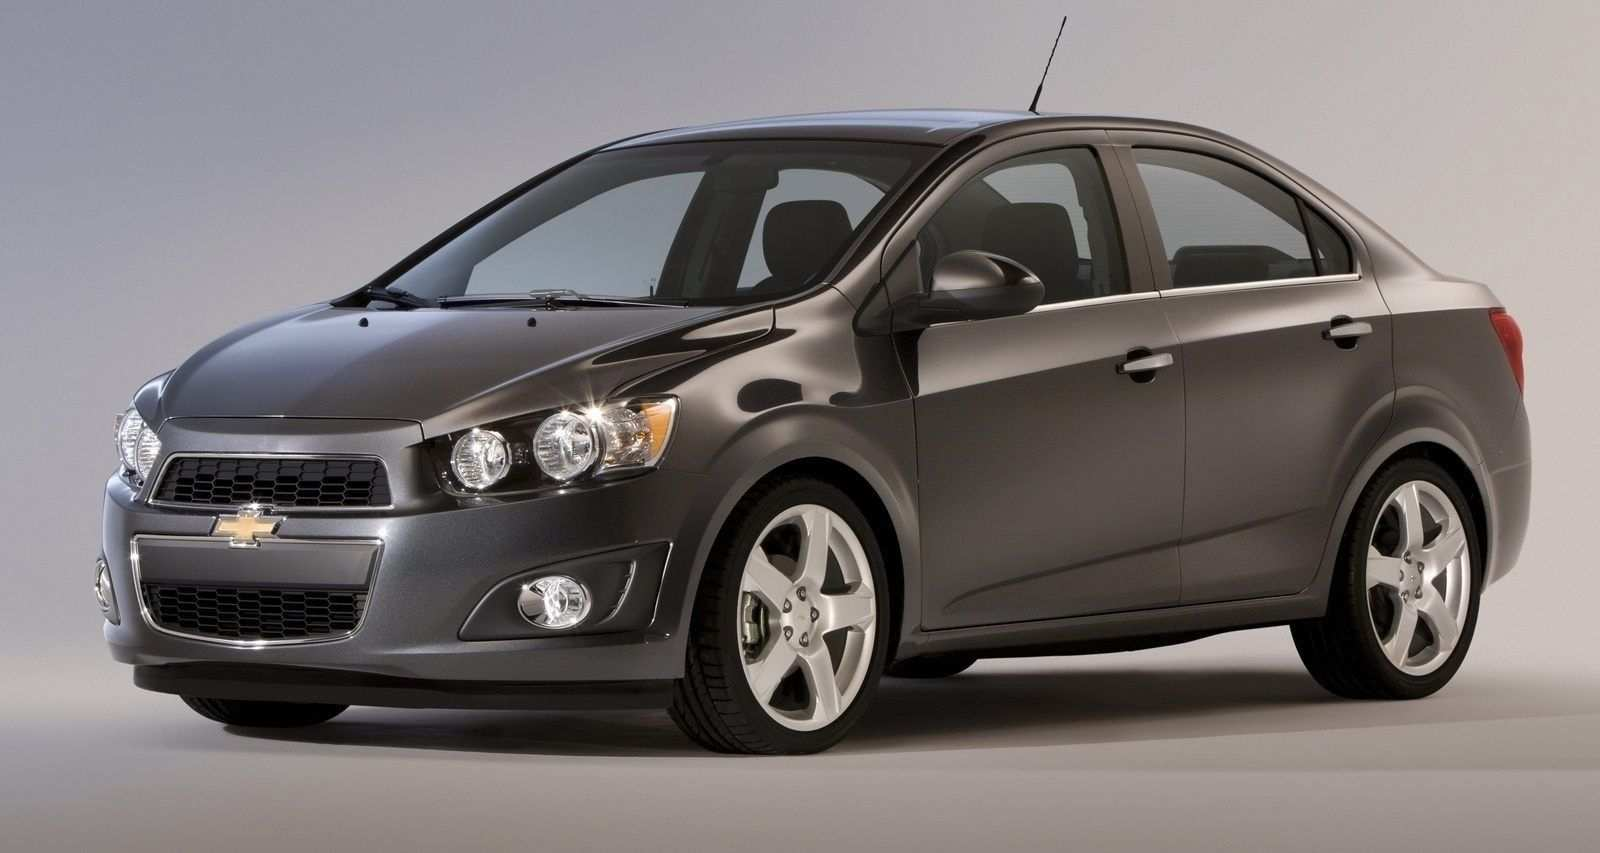 80 Concept of 2020 Chevy Sonic Ss Ev Rs Engine by 2020 Chevy Sonic Ss Ev Rs